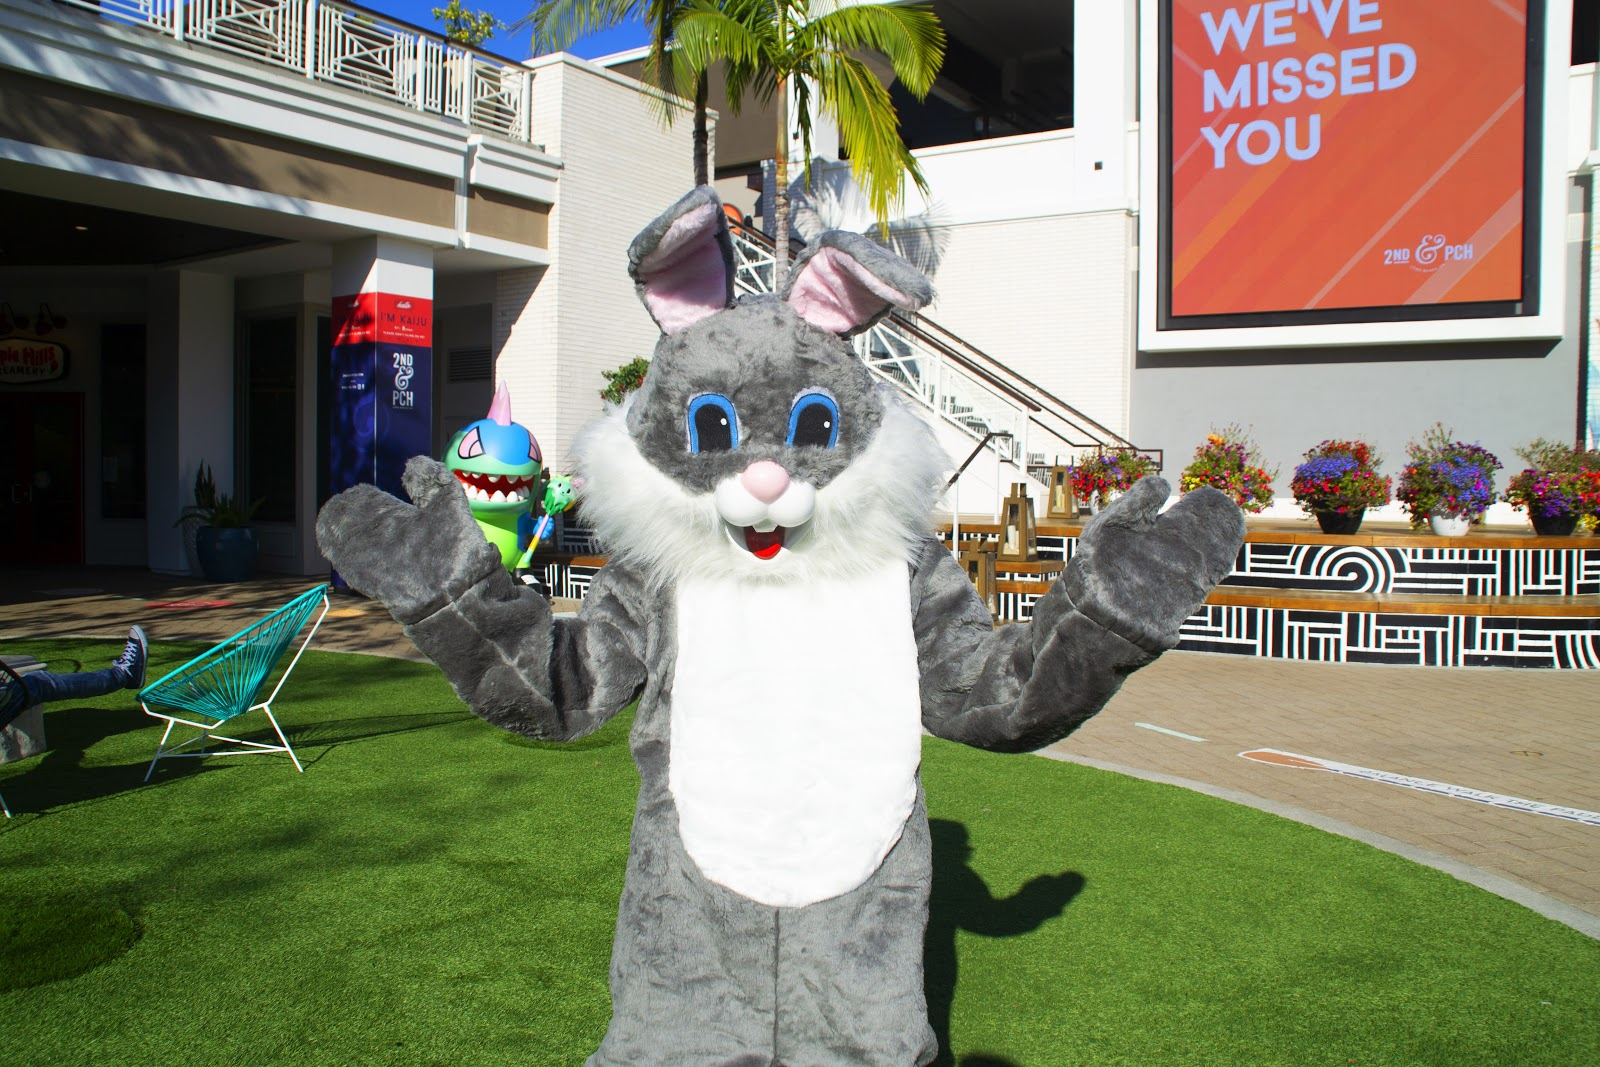 2nd & pch, long beach, pch movies and moonlight, easter bunny